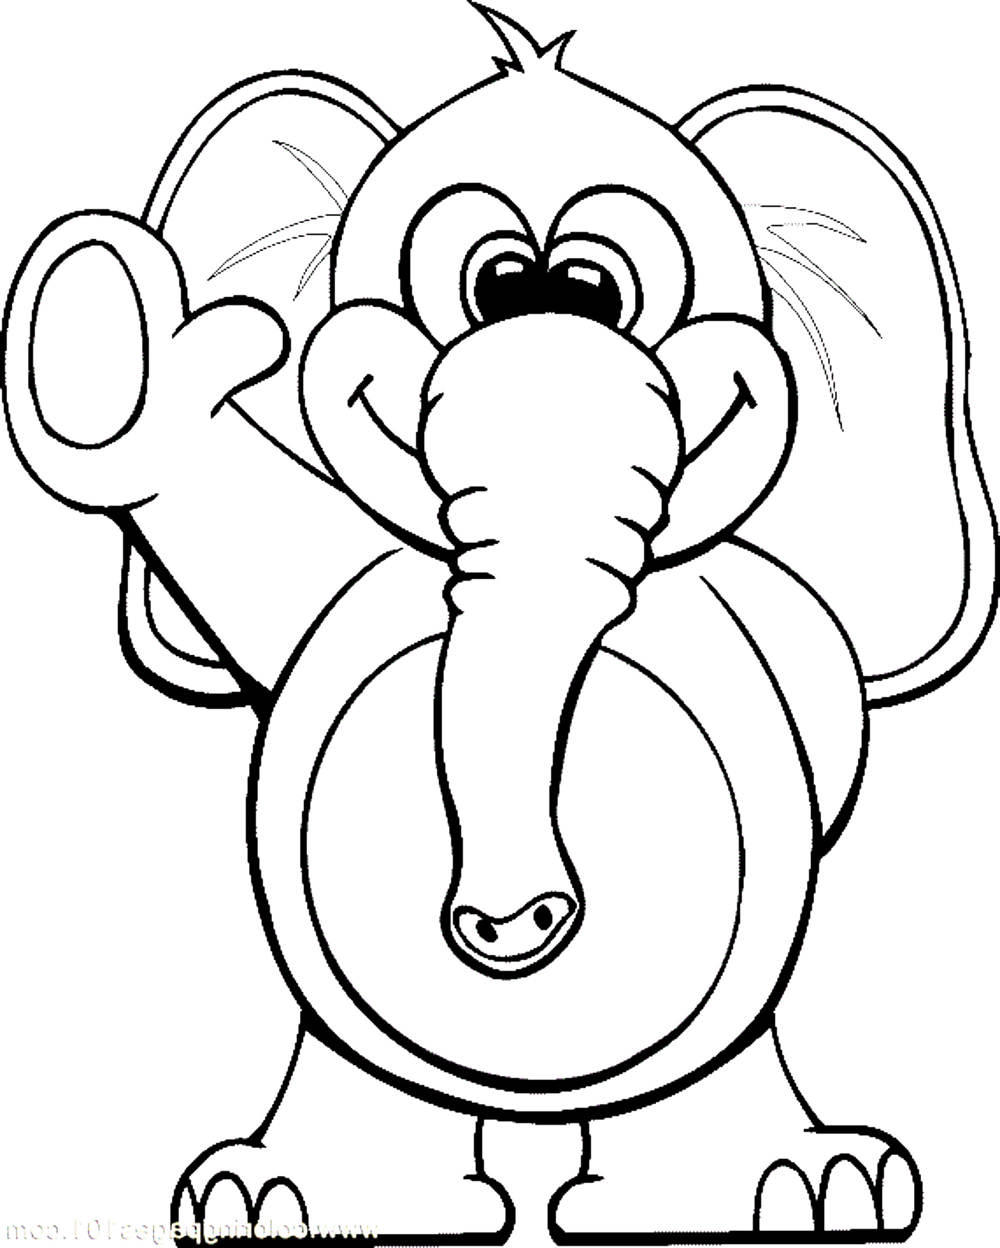 Print download teaching kids through elephant coloring for Elephant coloring pages